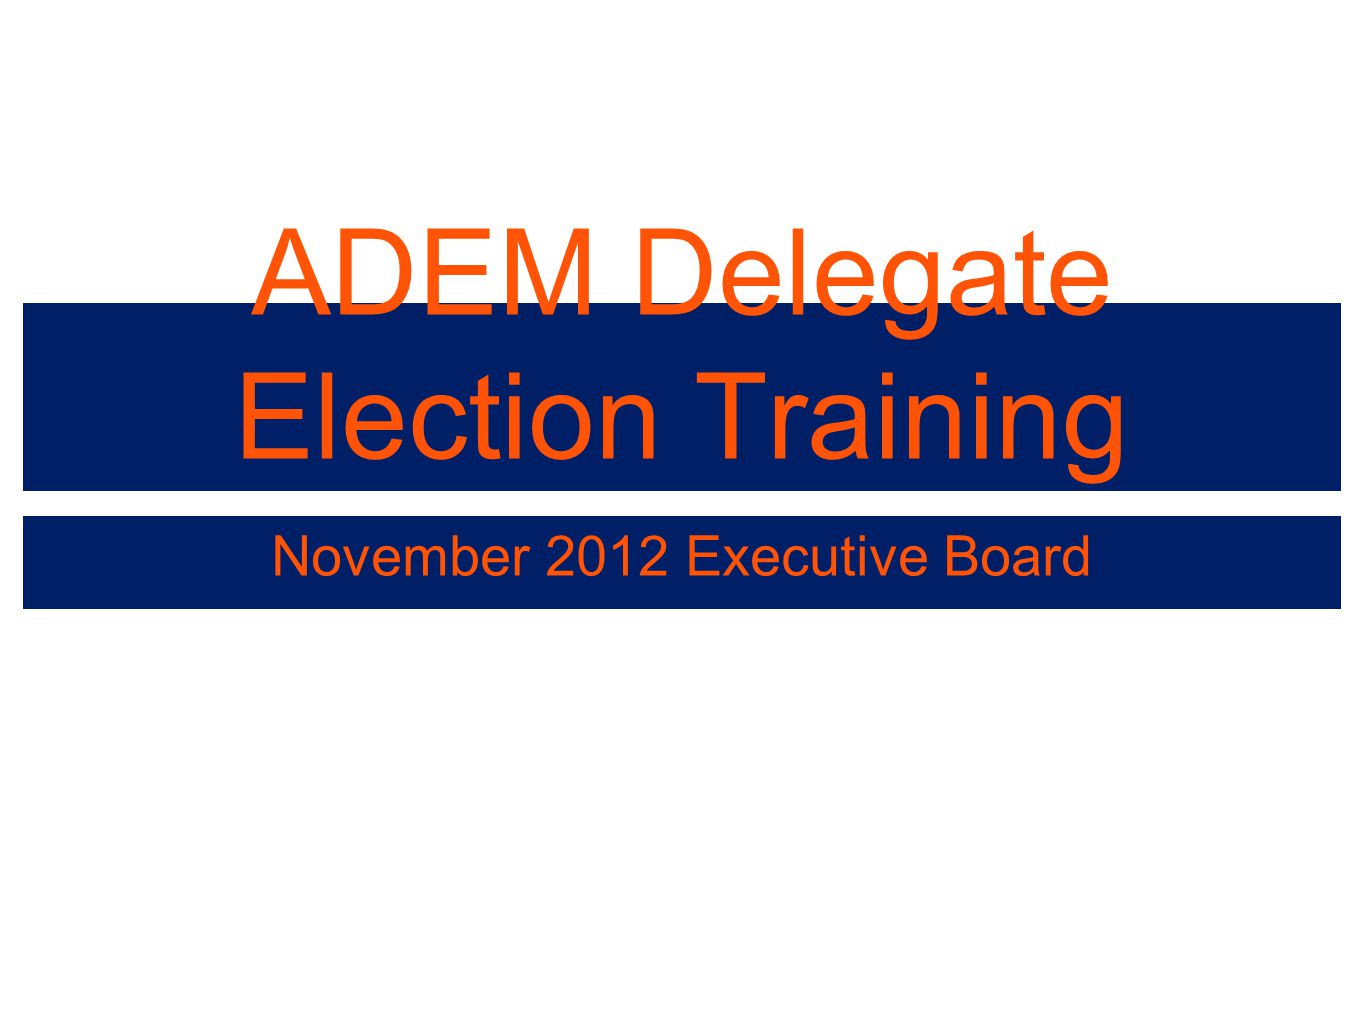 ADEM Delegate Election Training November 2012 Executive Board